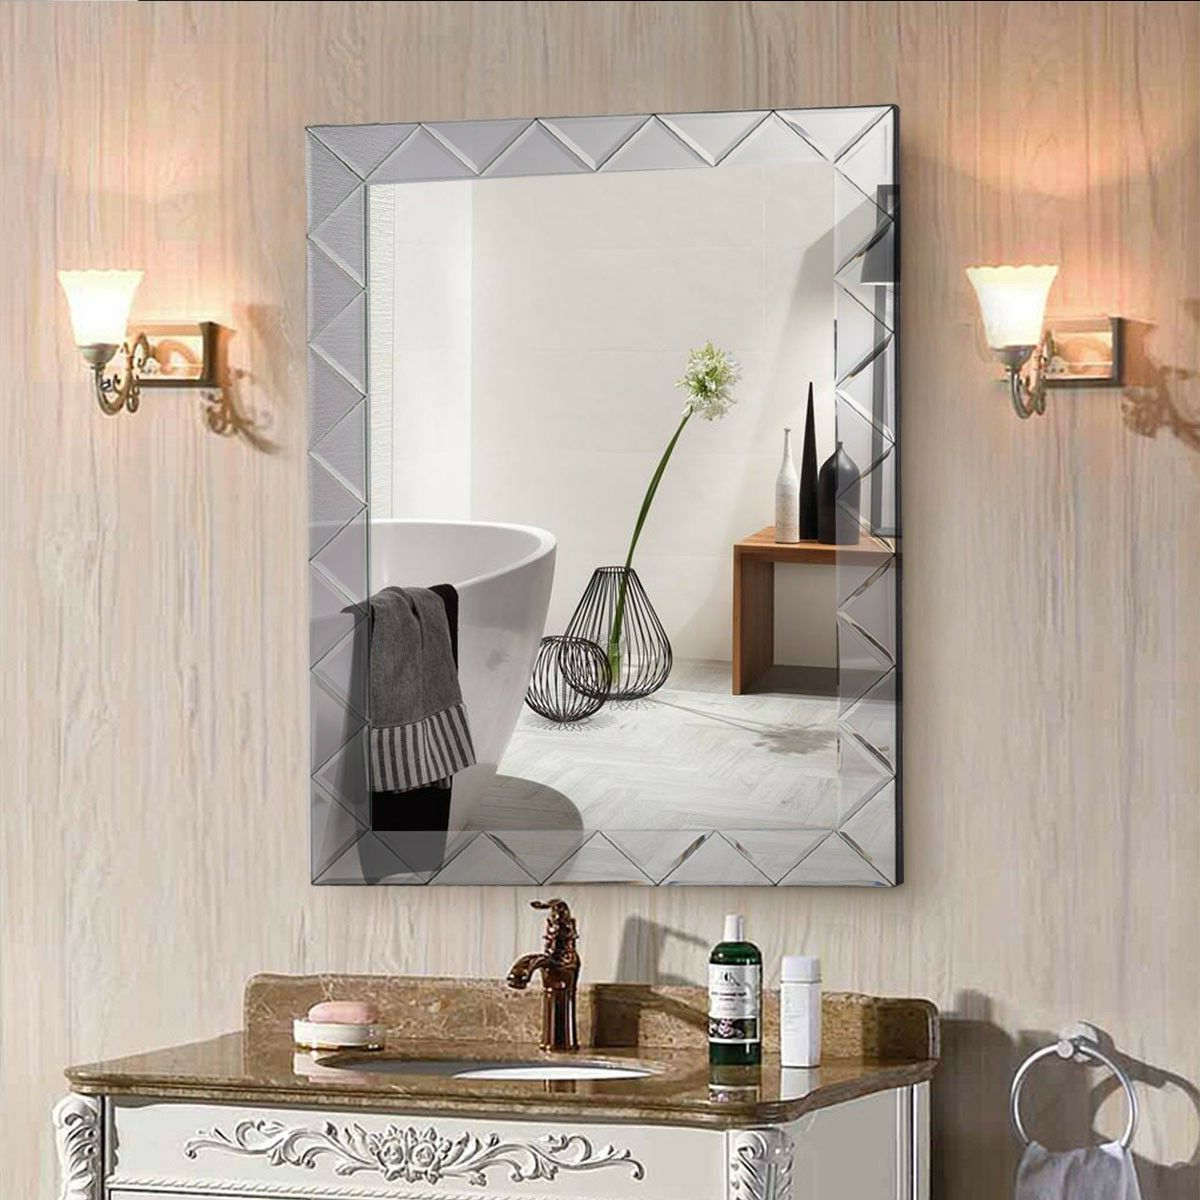 "2019 21.5"" X 30.5"" Modern Rectangle Wall Mirror Frame Angled Glass Panel Home Decor With Regard To Angled Wall Mirrors (Gallery 14 of 20)"